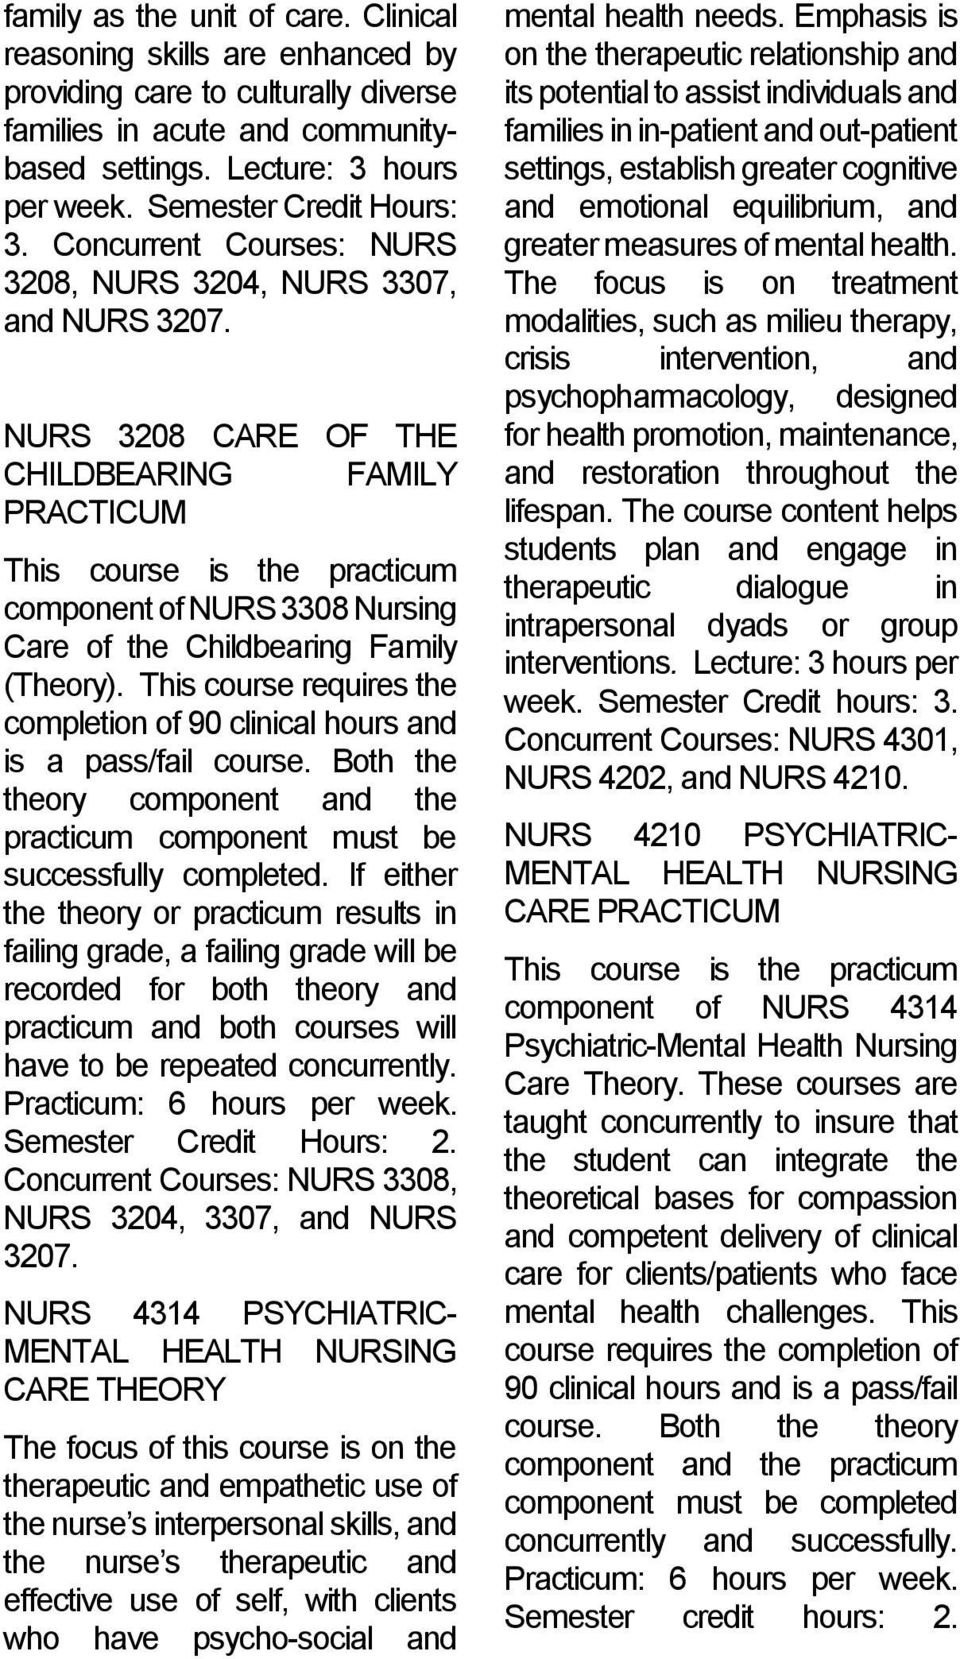 NURS 3208 CARE OF THE CHILDBEARING FAMILY PRACTICUM This course is the practicum component of NURS 3308 Nursing Care of the Childbearing Family (Theory).